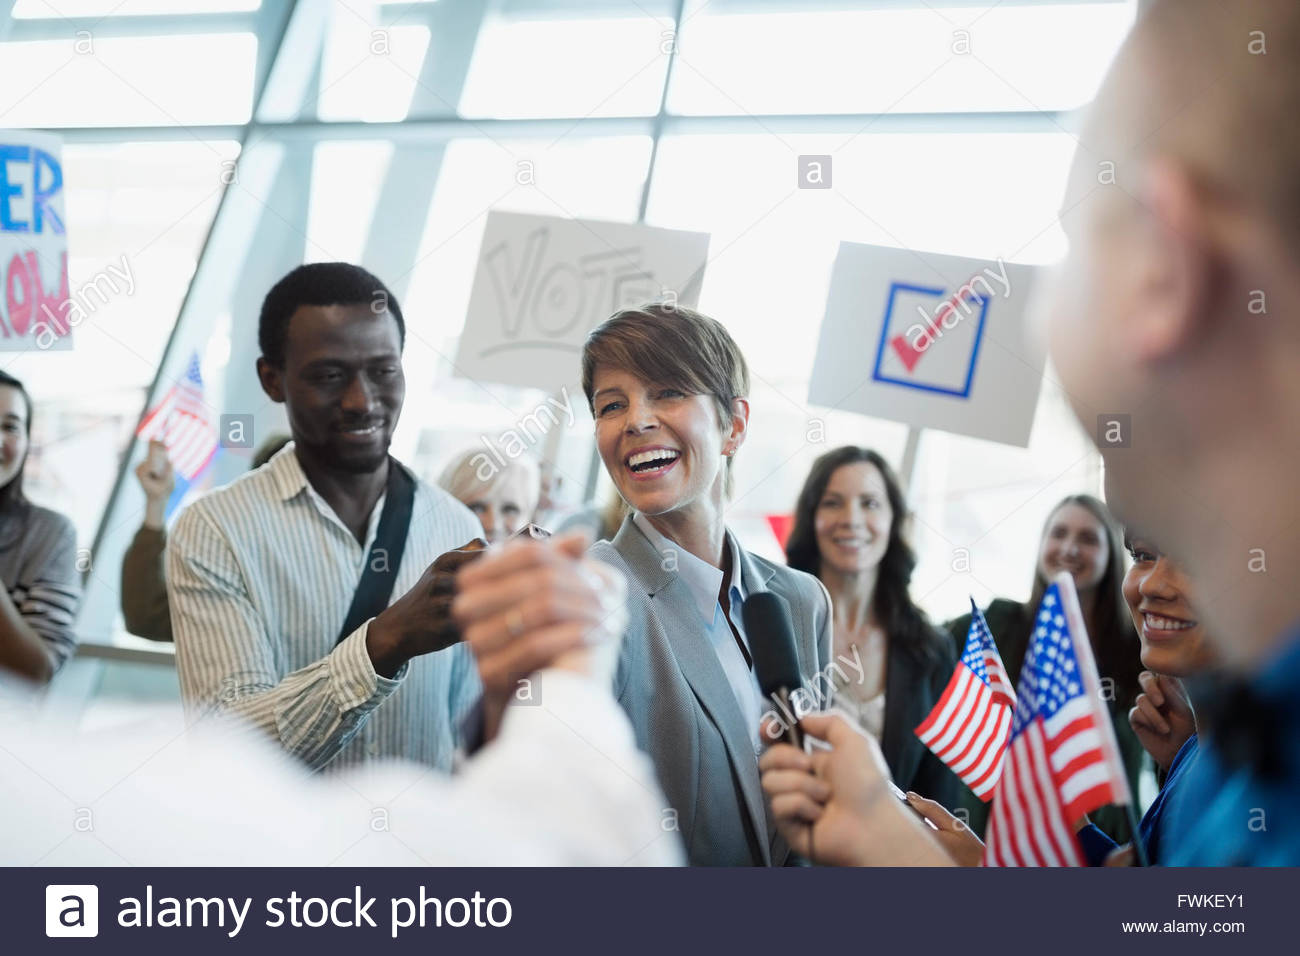 Enthusiastic female politician shaking hands with audience - Stock Image